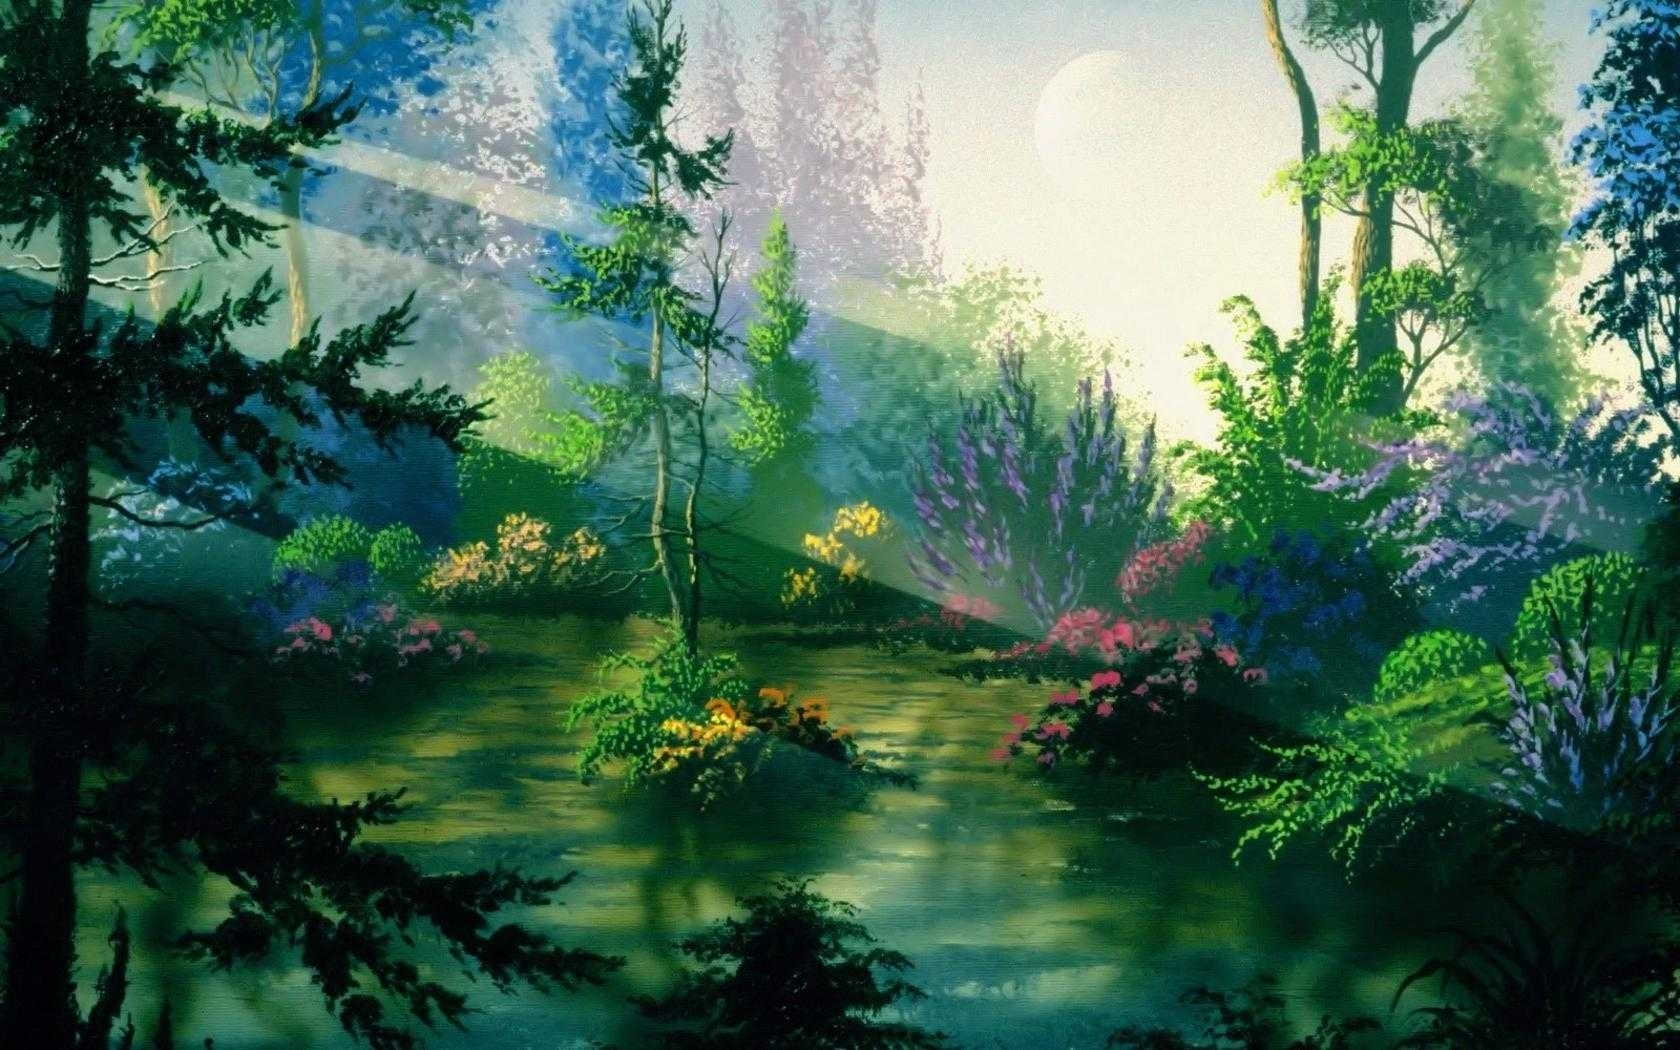 fantasy nature wallpaper backgrounds desktop for computer hd